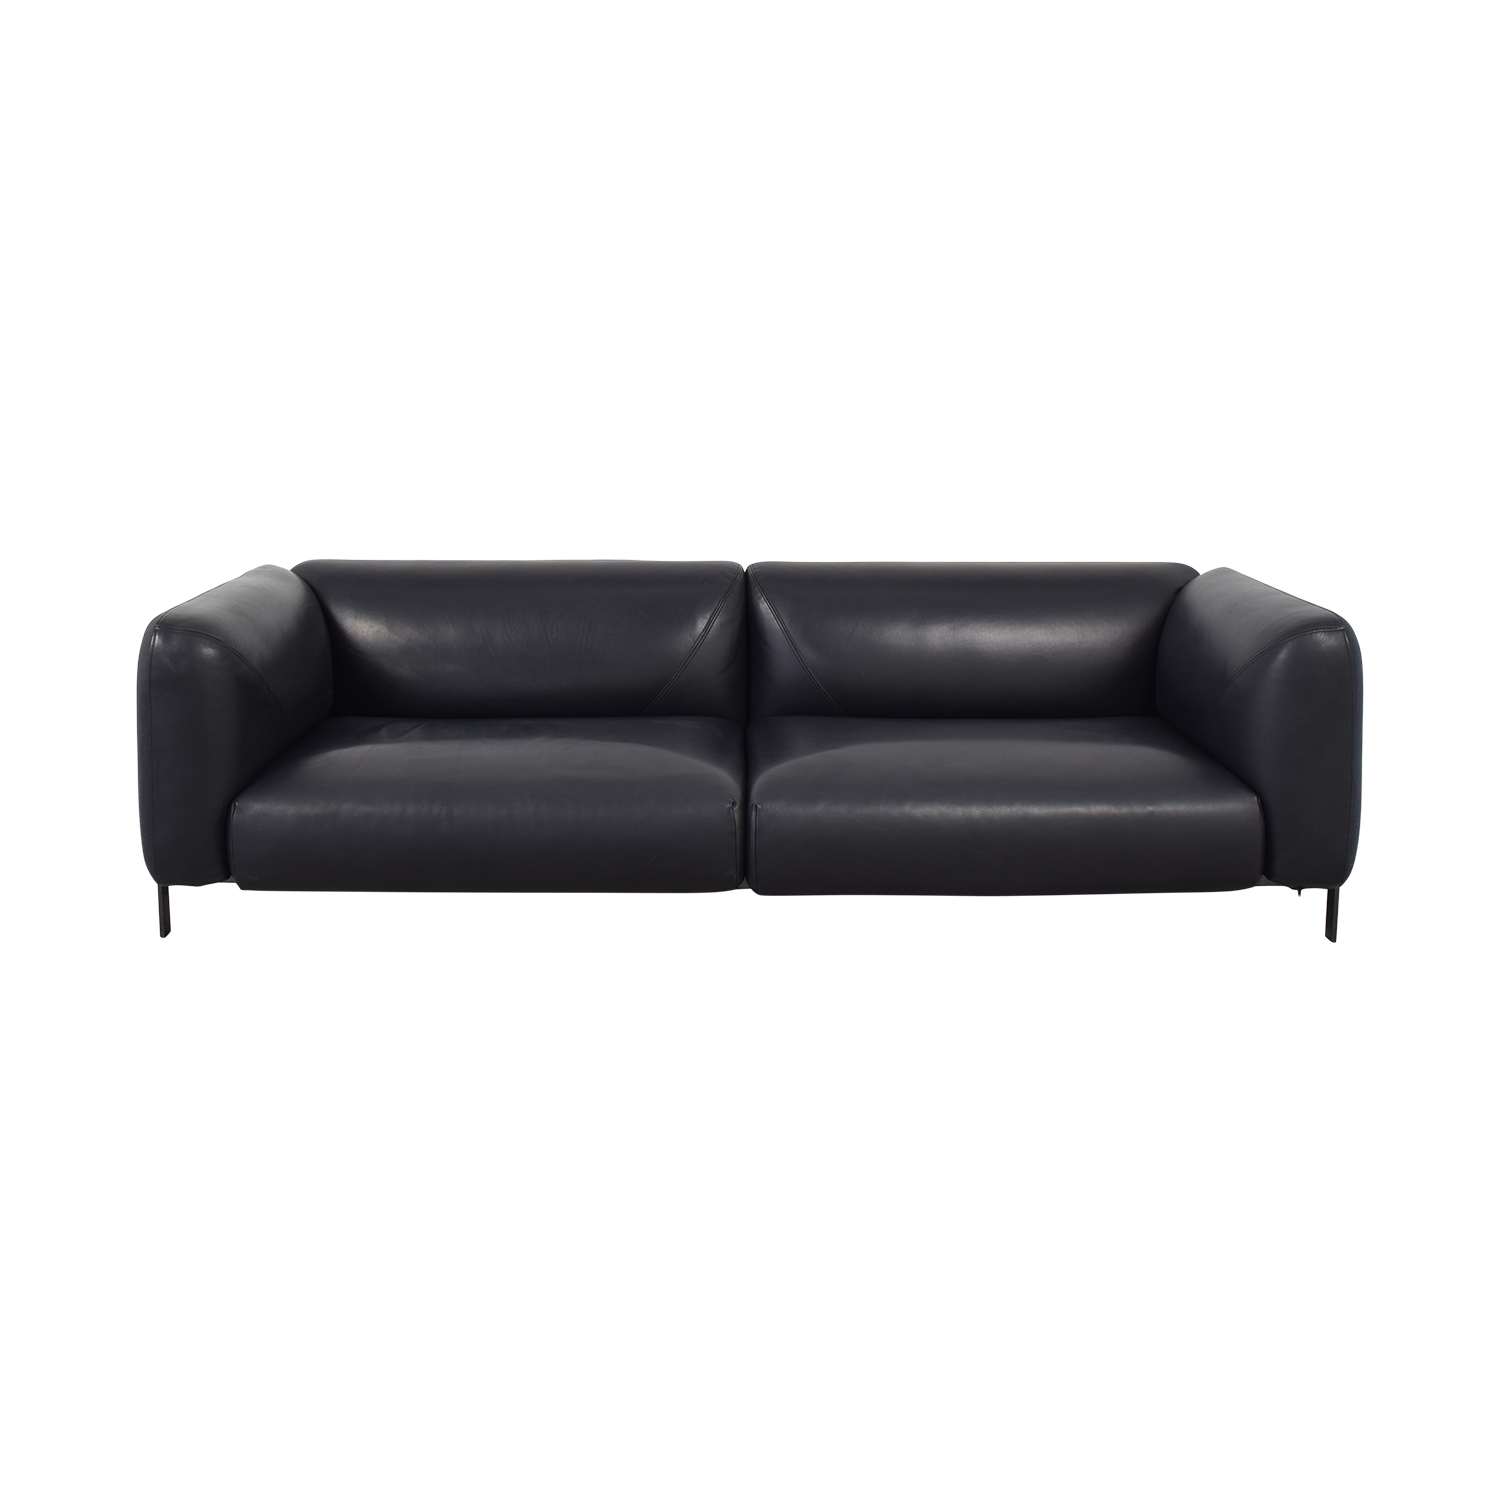 Roche Bobois Roche Bobois Lobby Large Three-Seat Sofa nj